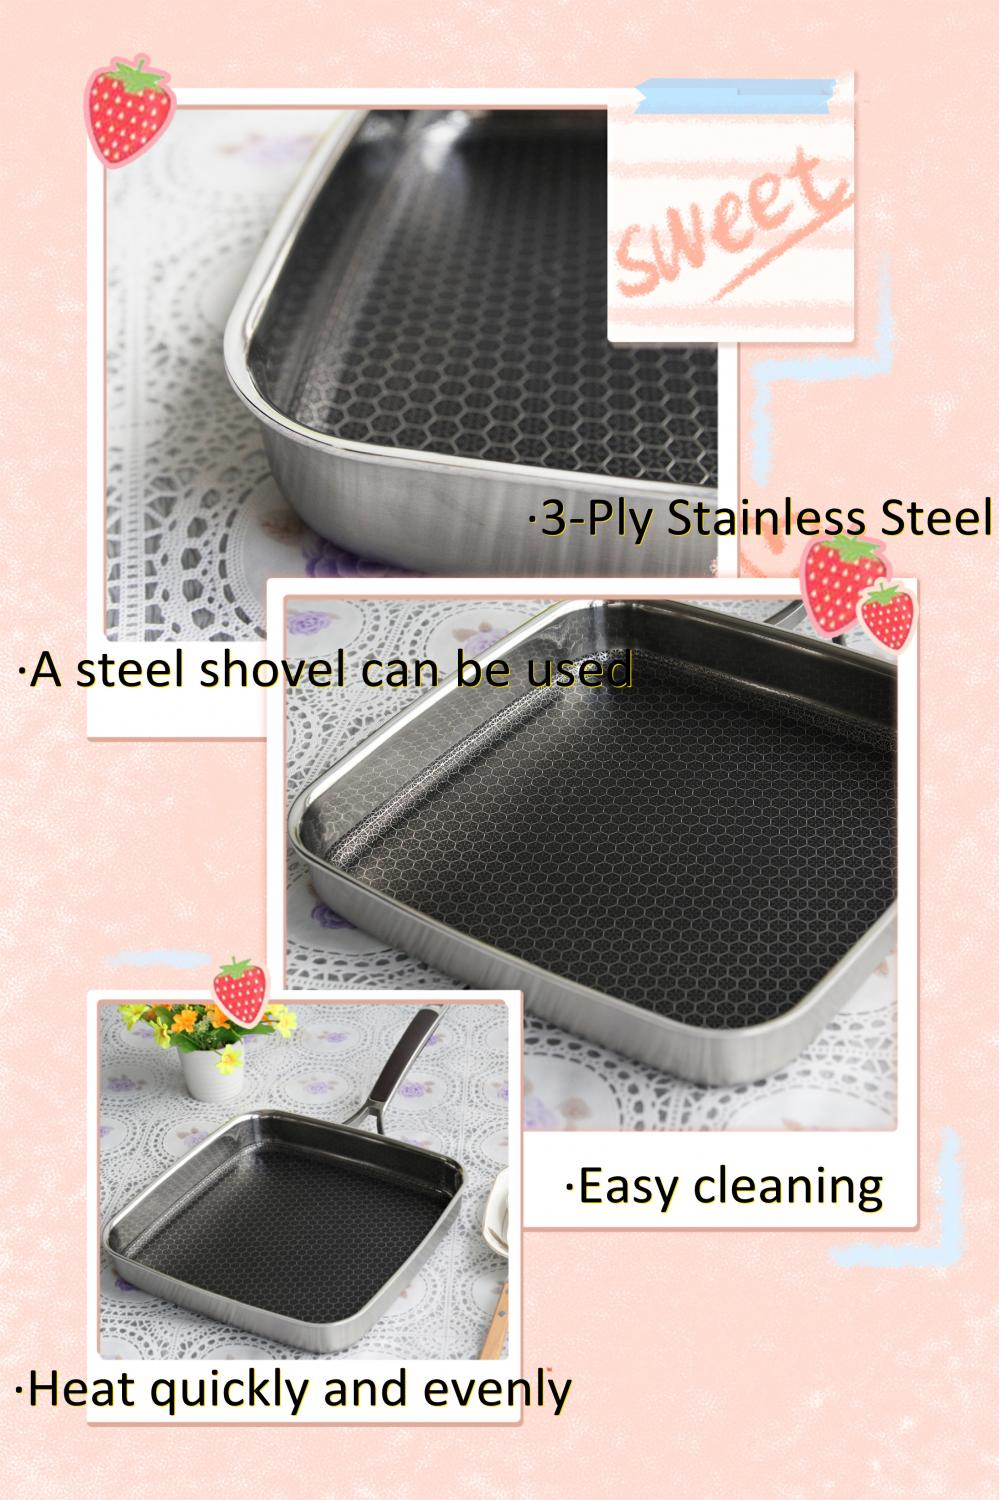 triply stainless steel made in korea stockpot